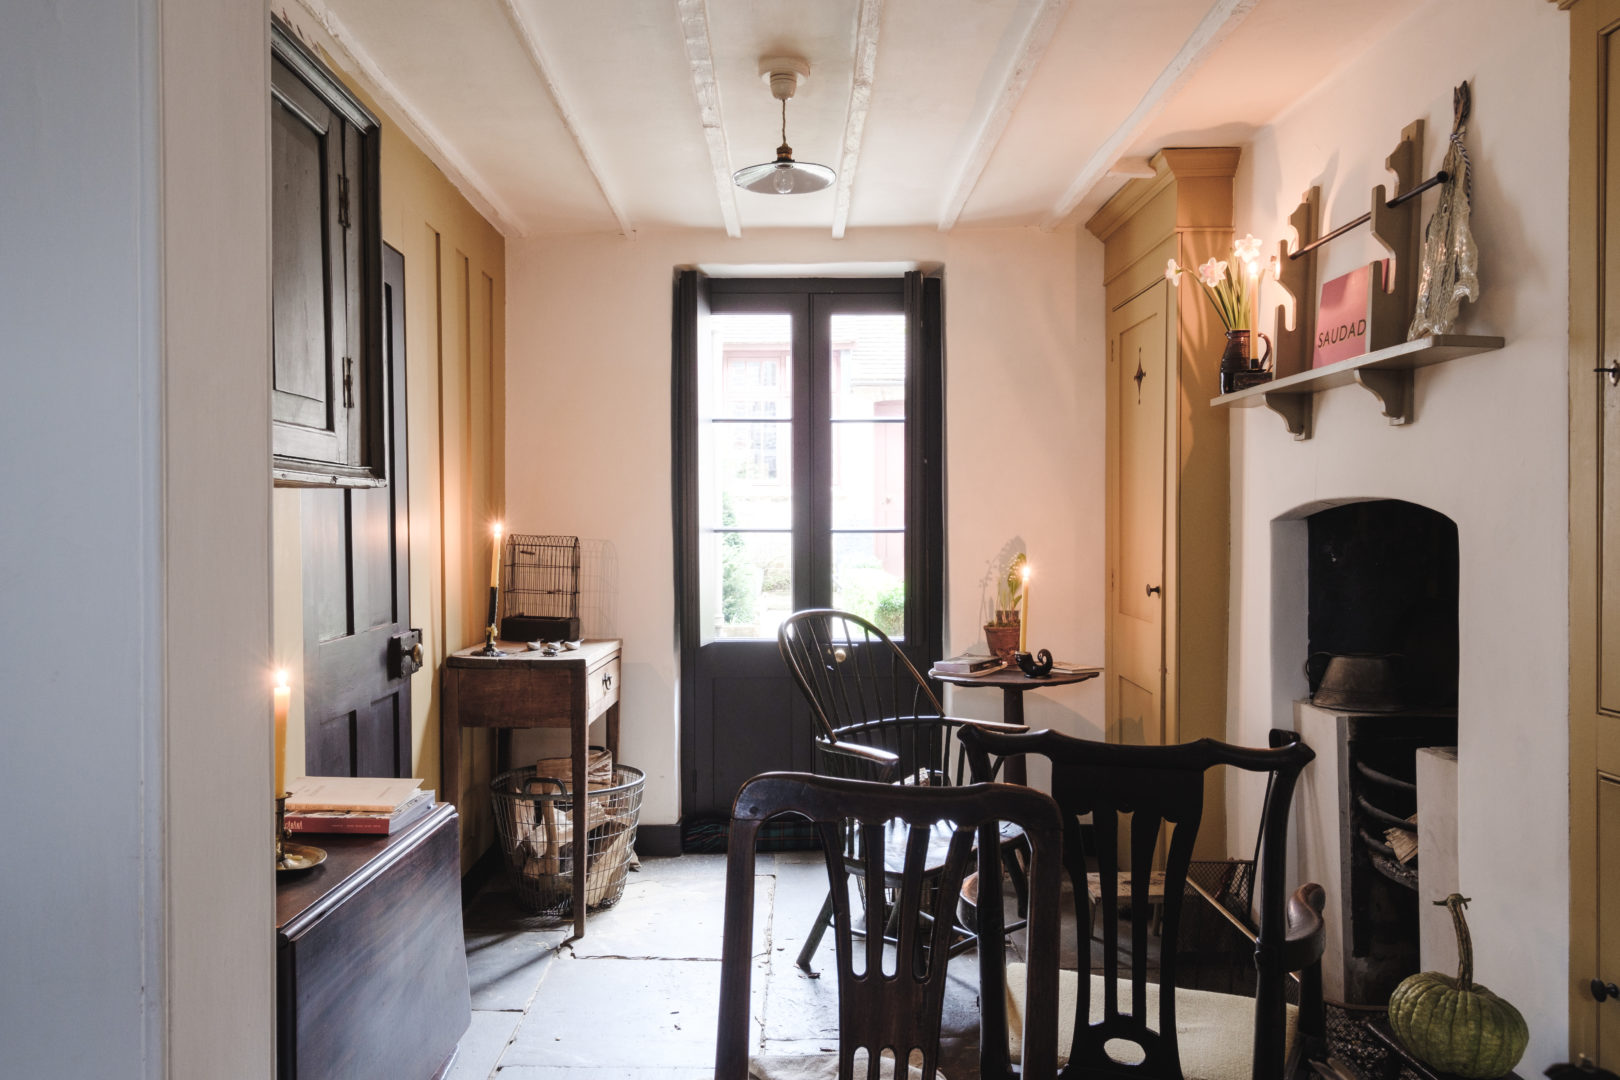 Pedro da Costa Felgueiras - Georgian House Renovation - Varden Street - Aucoot - Kitchen with fireplace